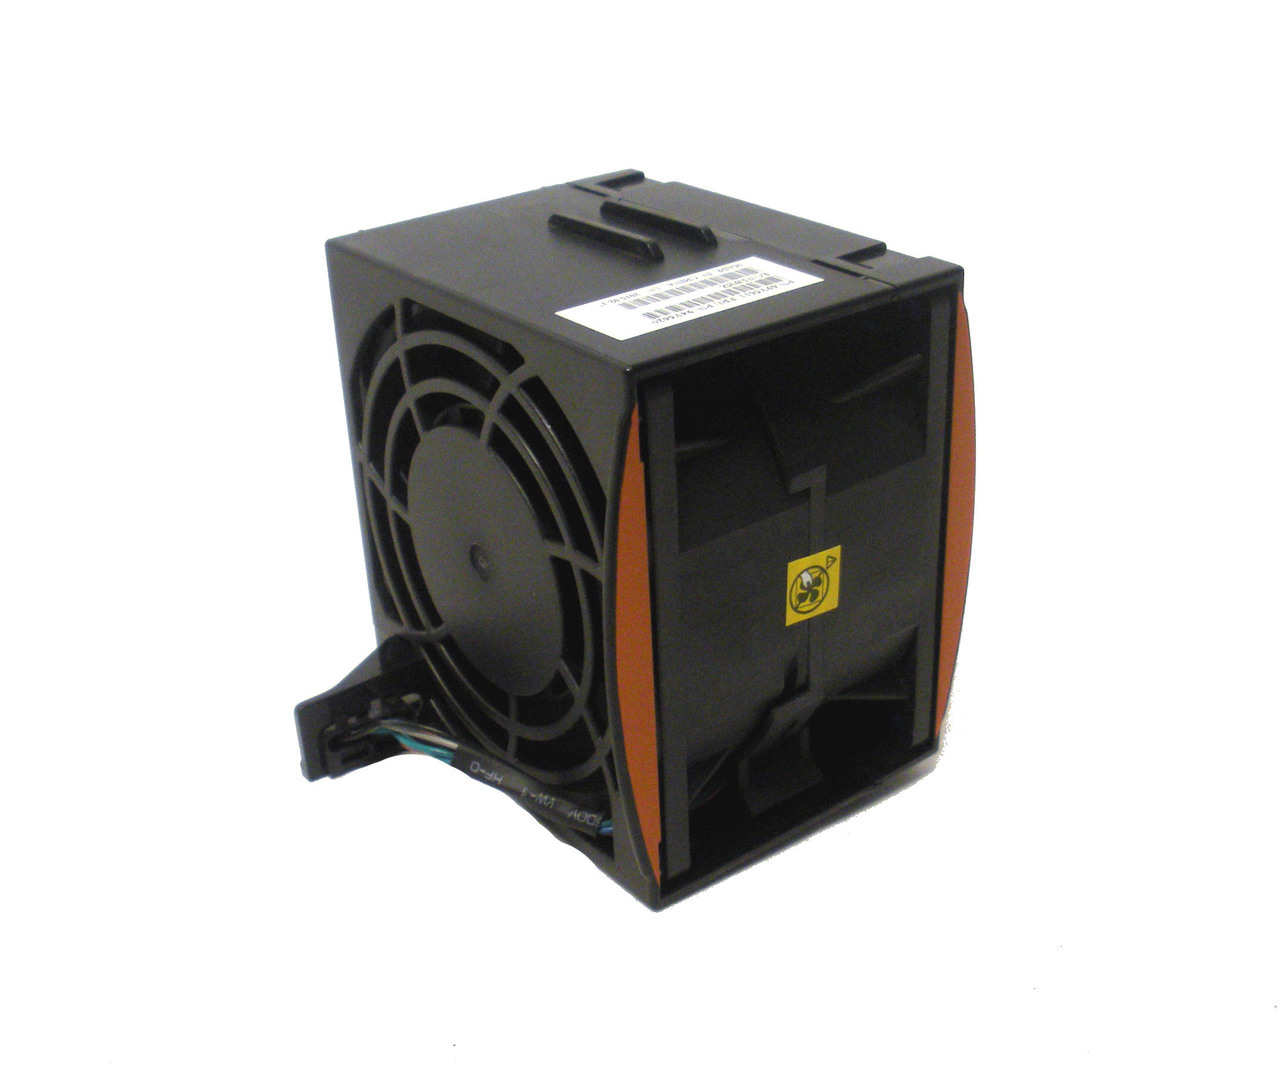 FAN FOR SYSTEMS X3650 M4